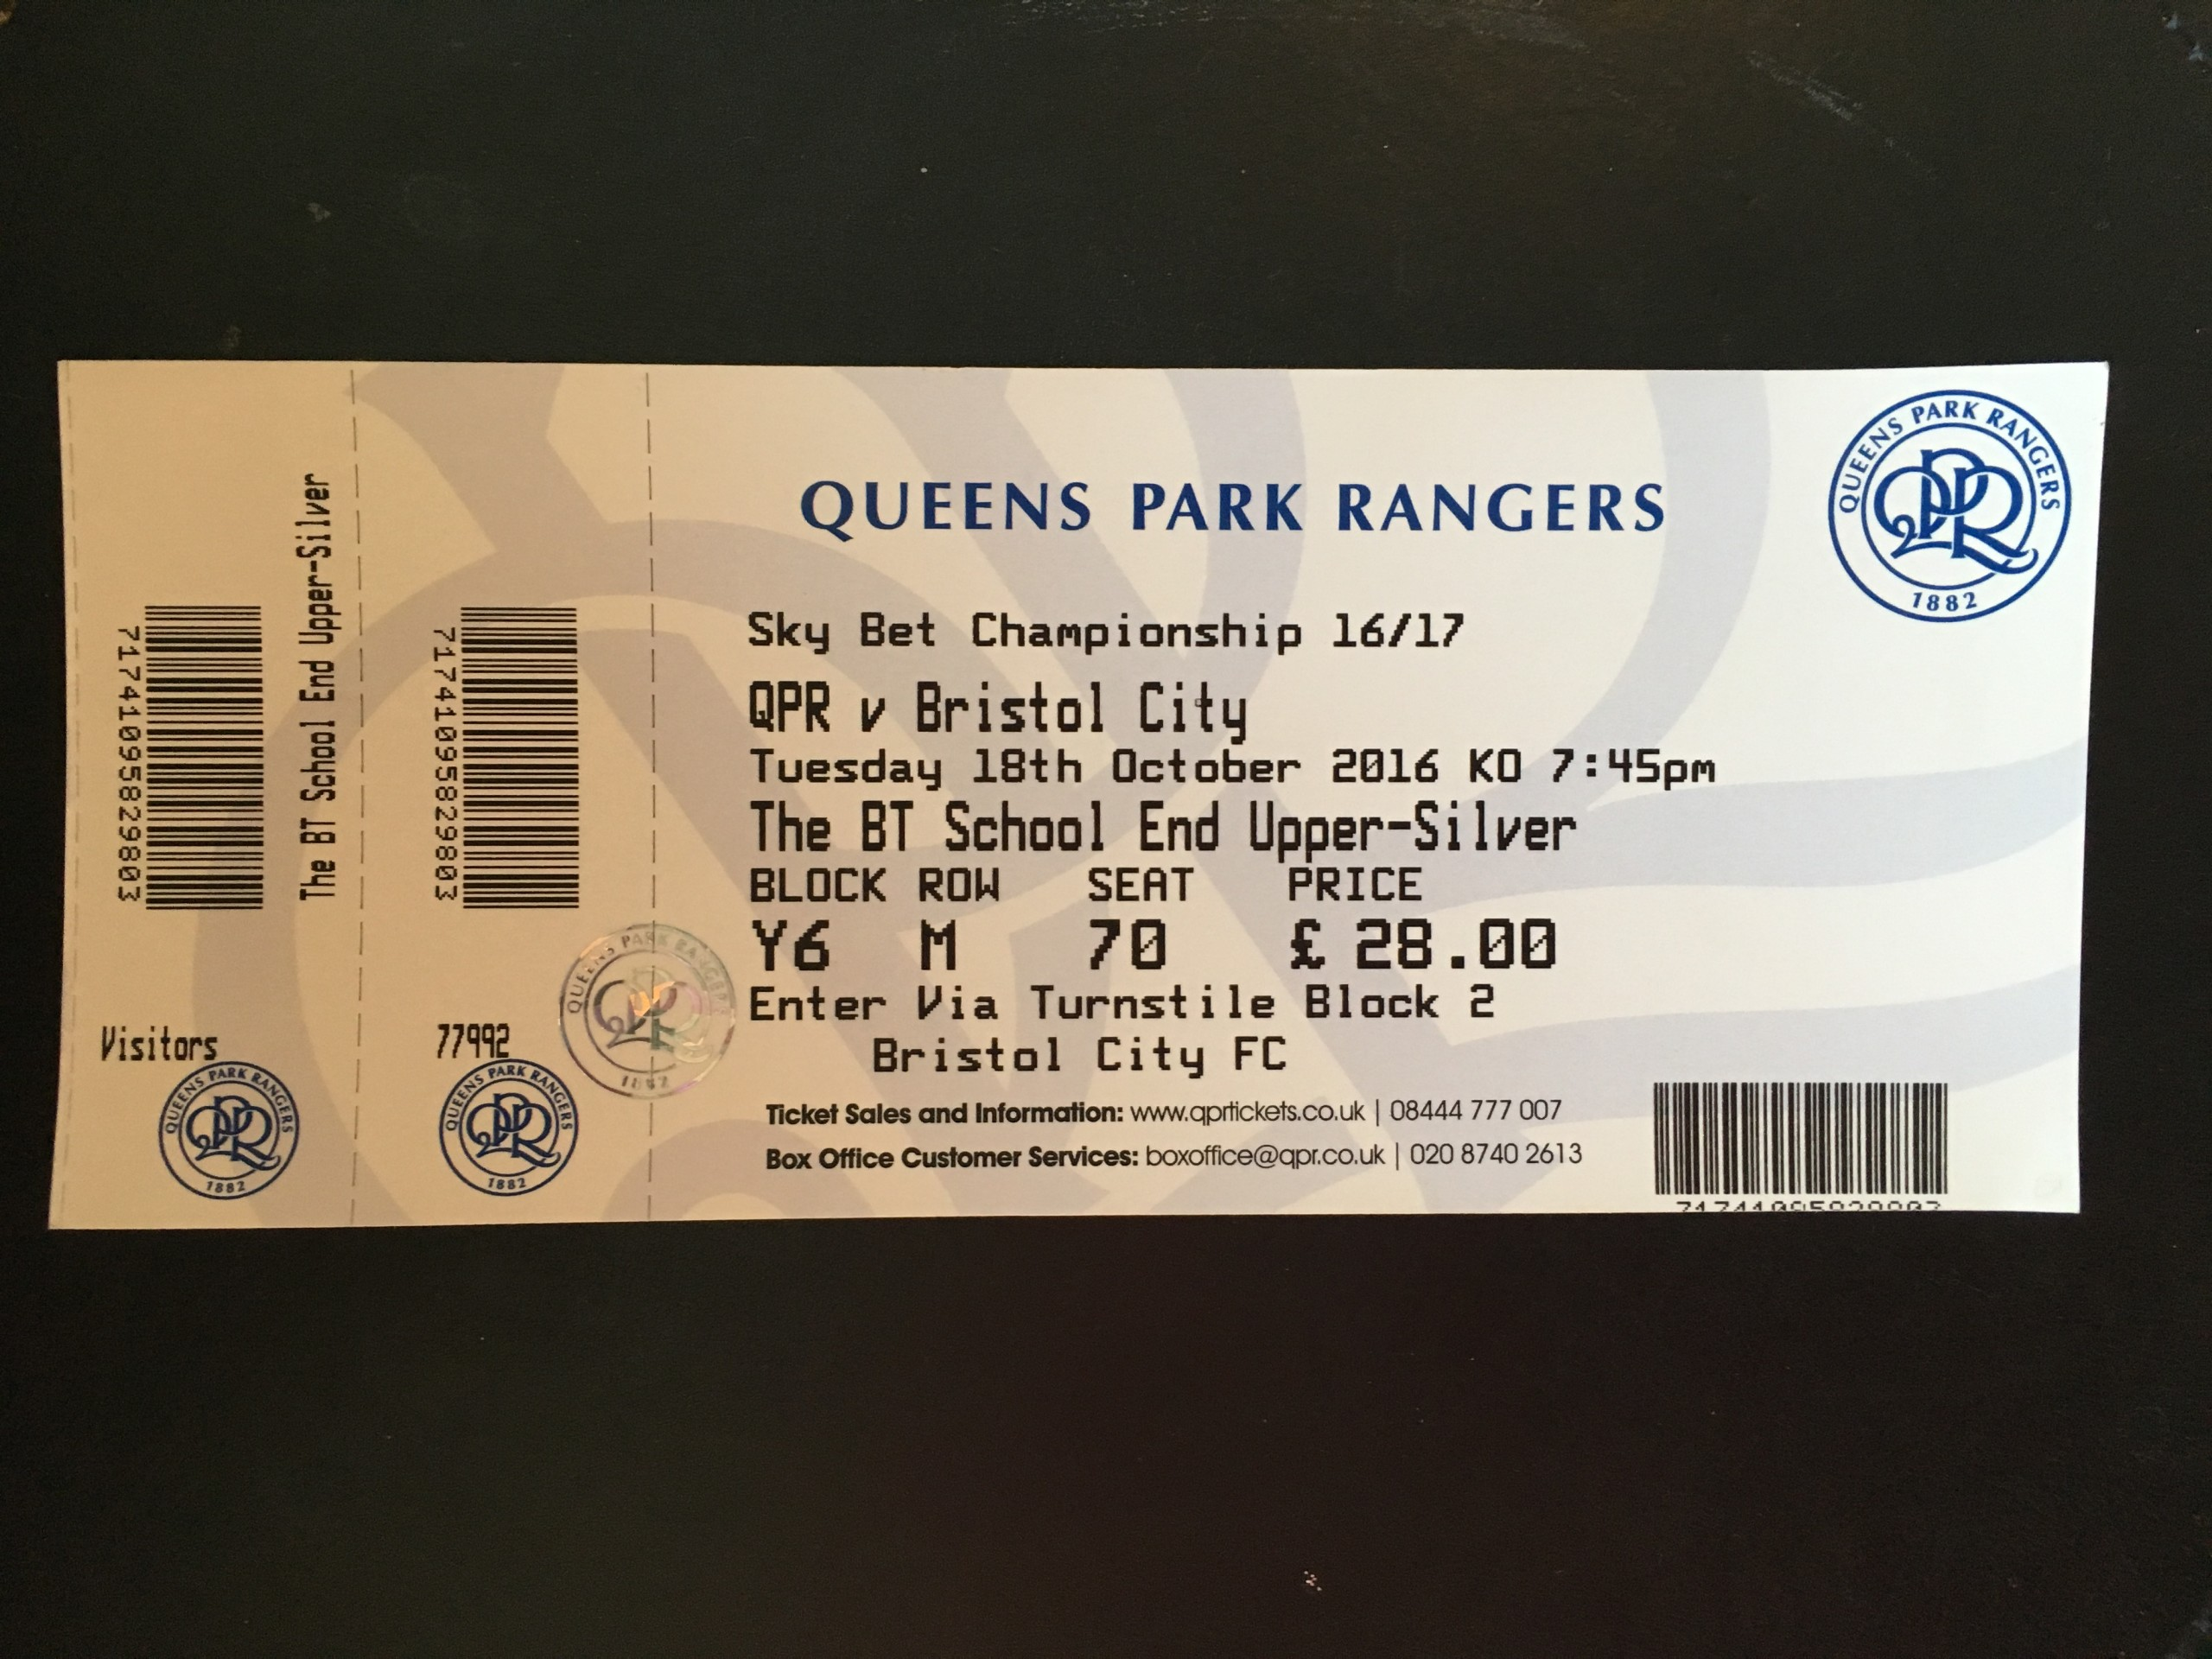 Queens Park Rangers v Bristol City 18-10-2016 Ticket